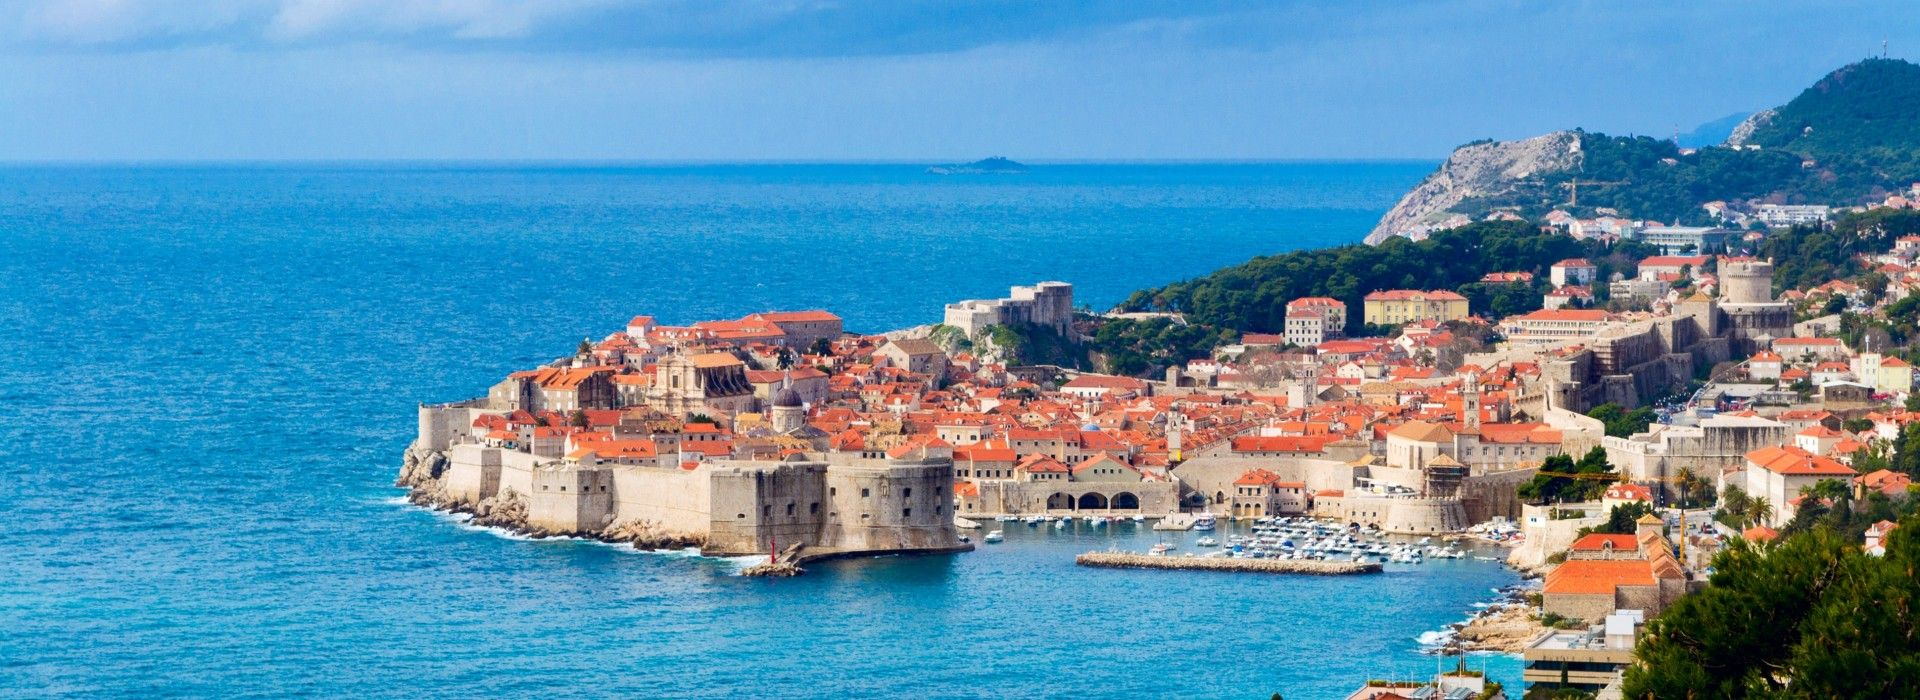 Food, wine, events and nightlife Tours in Dubrovnik